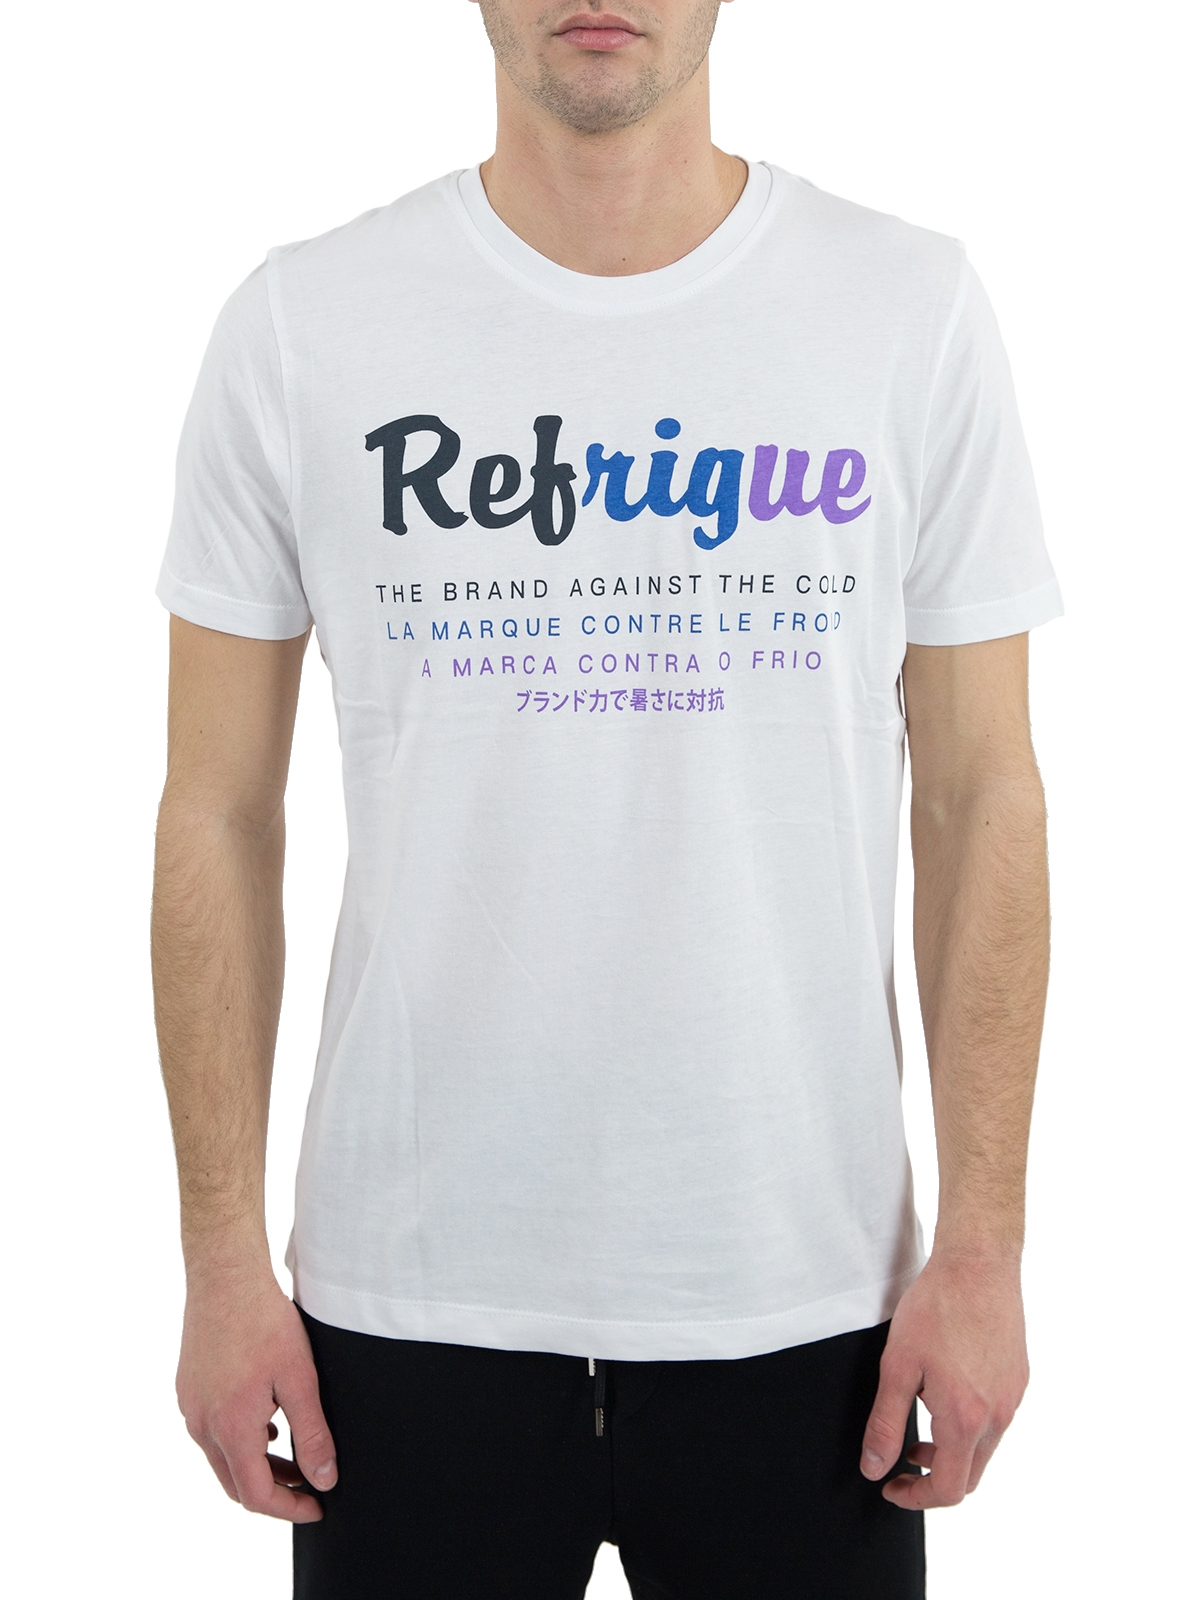 Refrigue T-Shirt R45076SJU1M